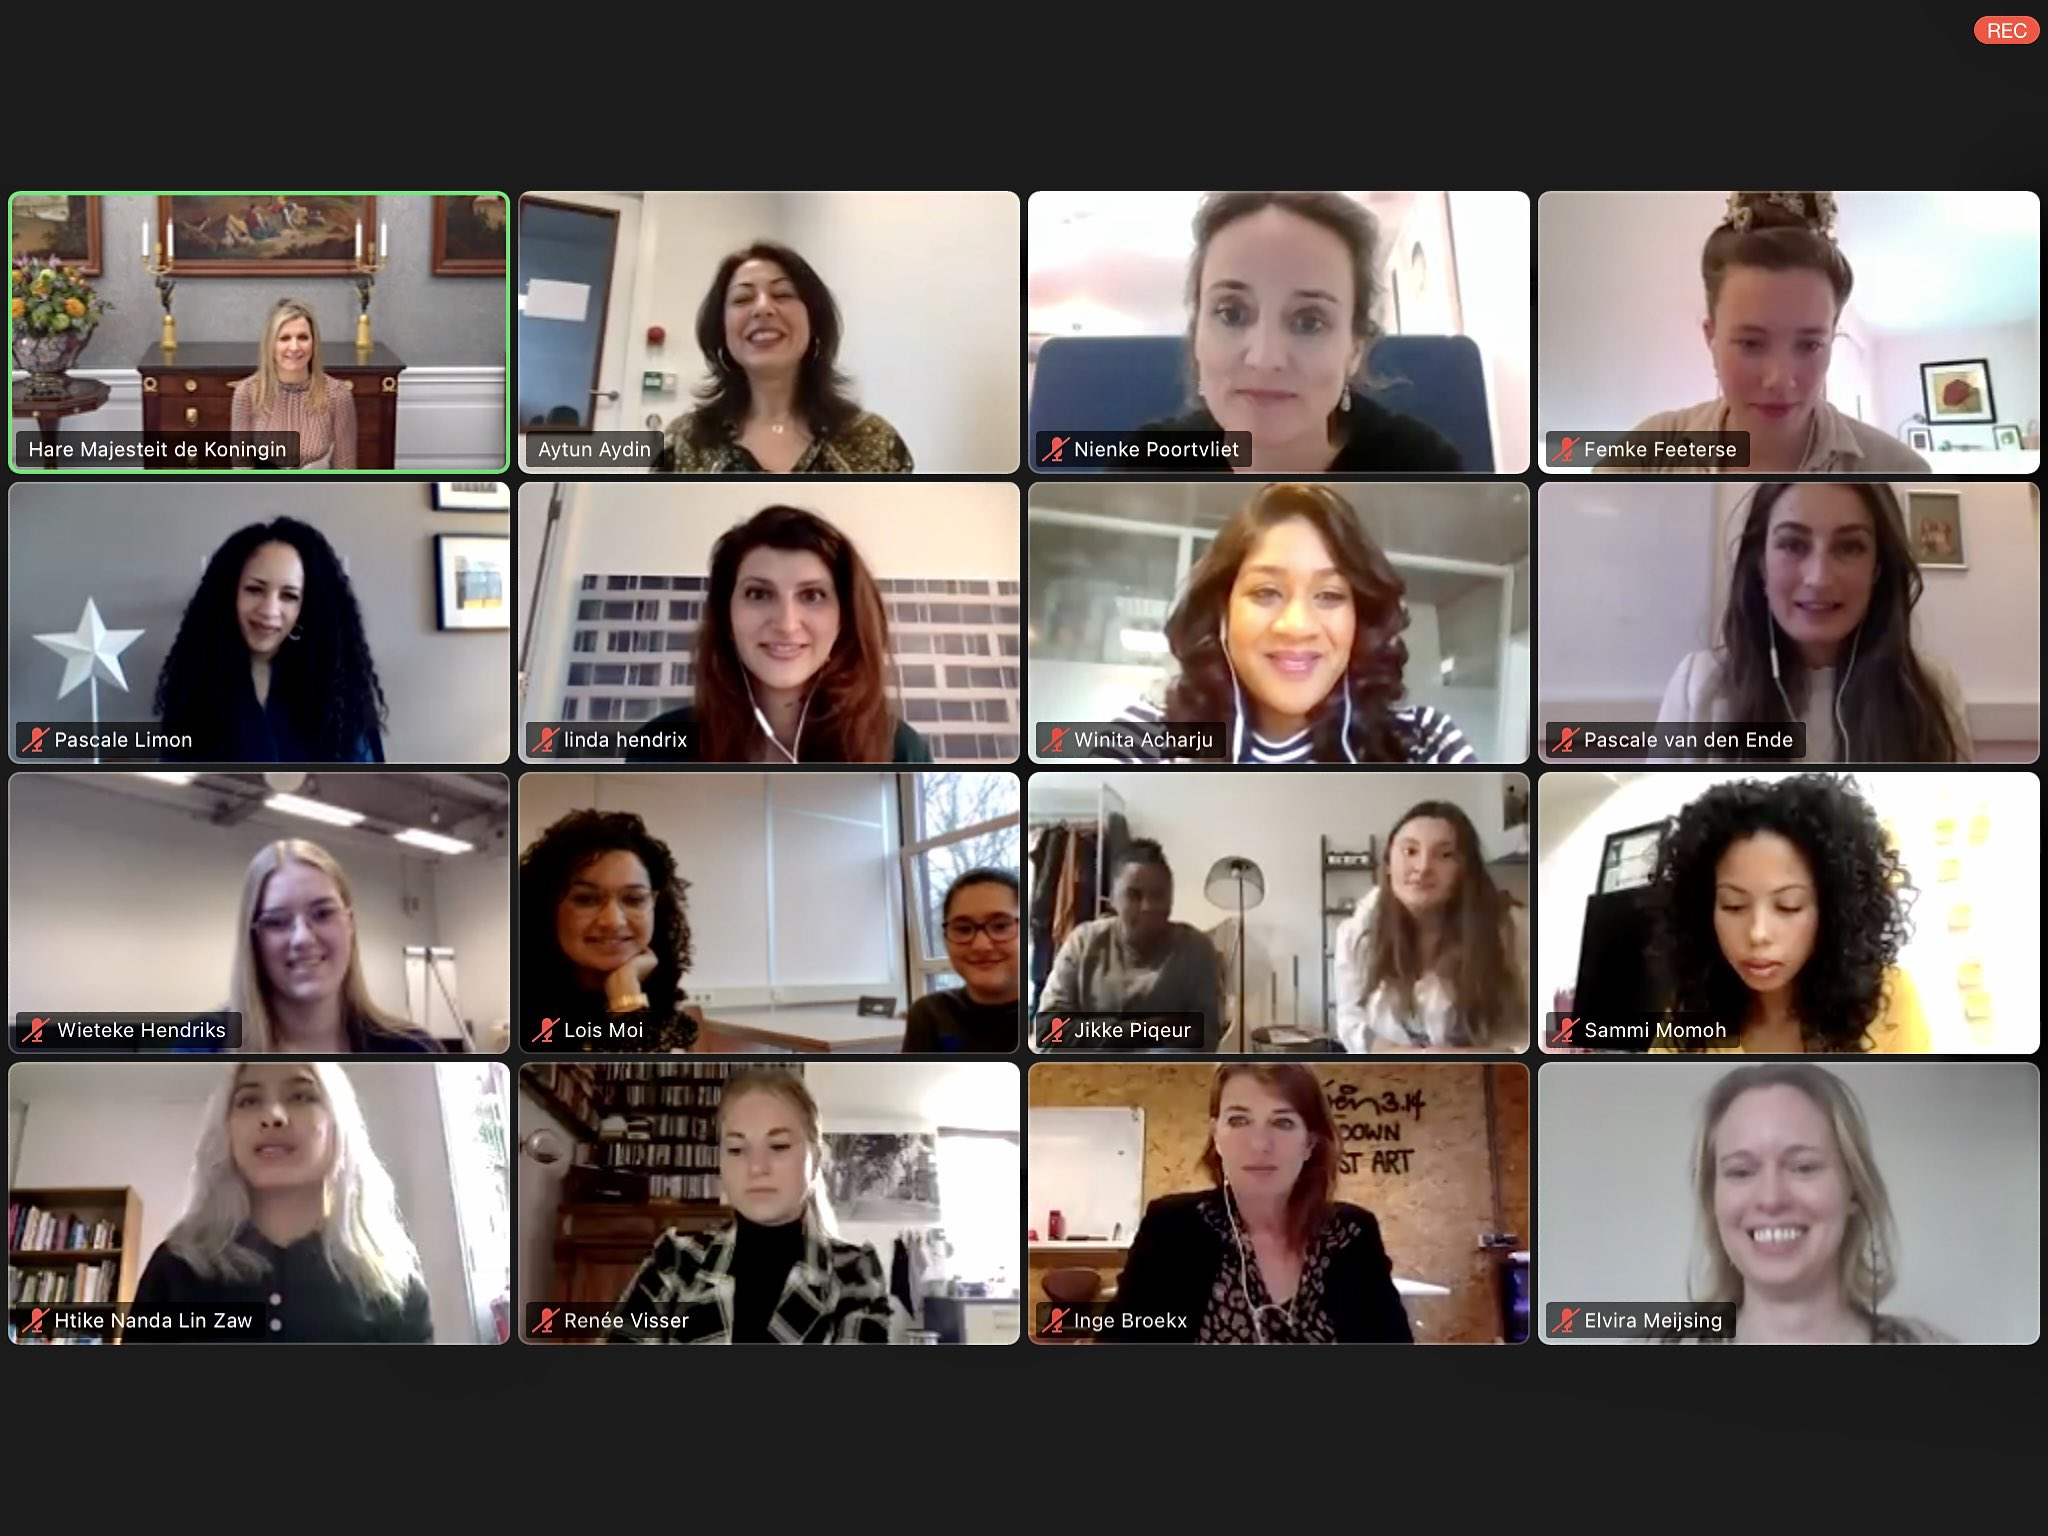 Queen Maxima of Netherlands had a virtual meeting with the Elance founder Aytun Aydin, employees, coaches and participants